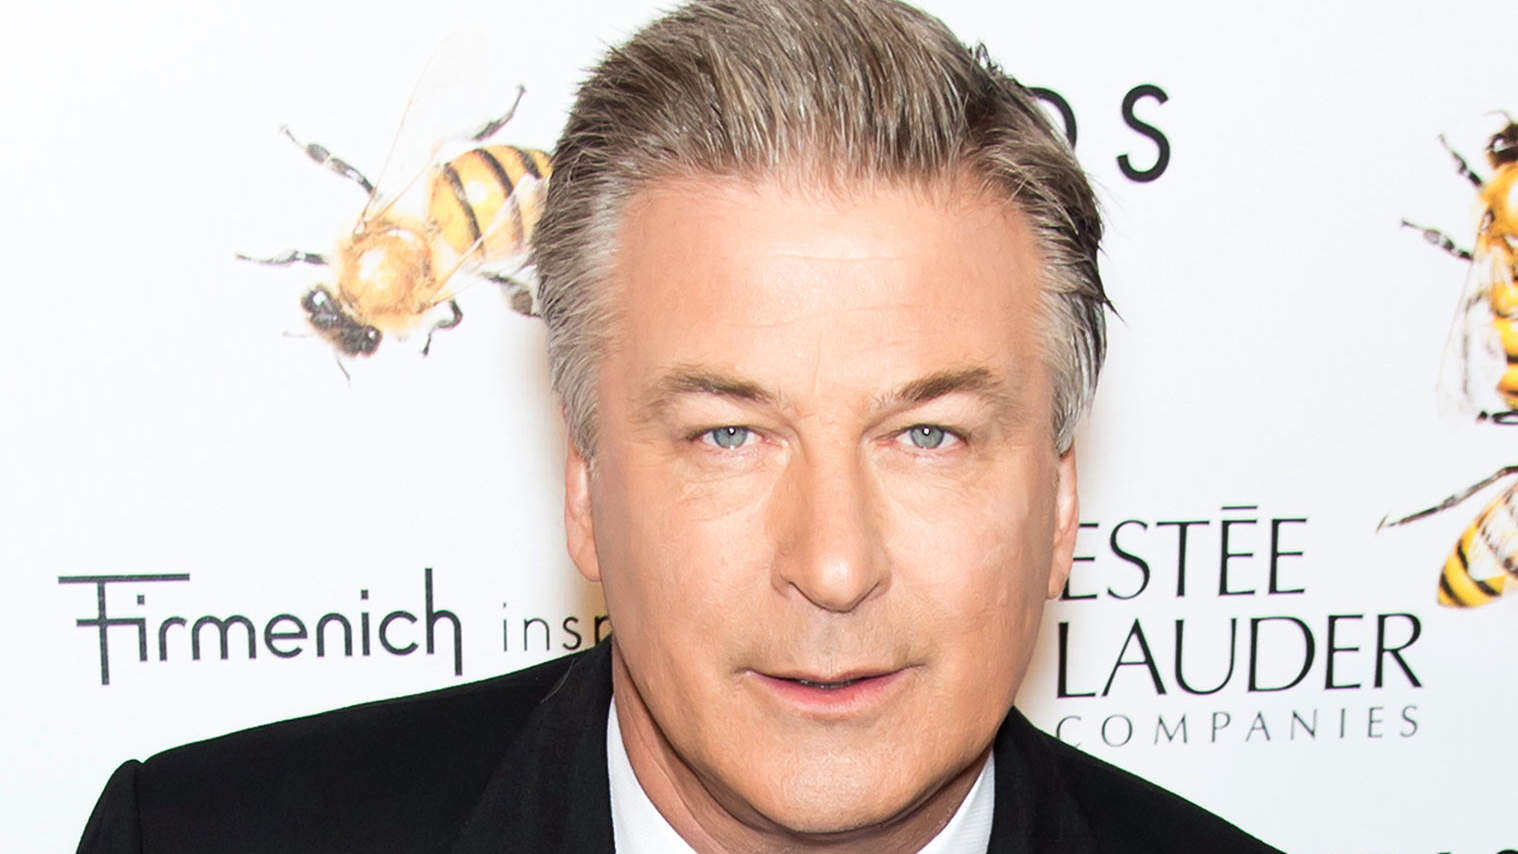 Alec Baldwin Opens Up About Suffering From Lyme Disease and Thinking He Was Going to Die